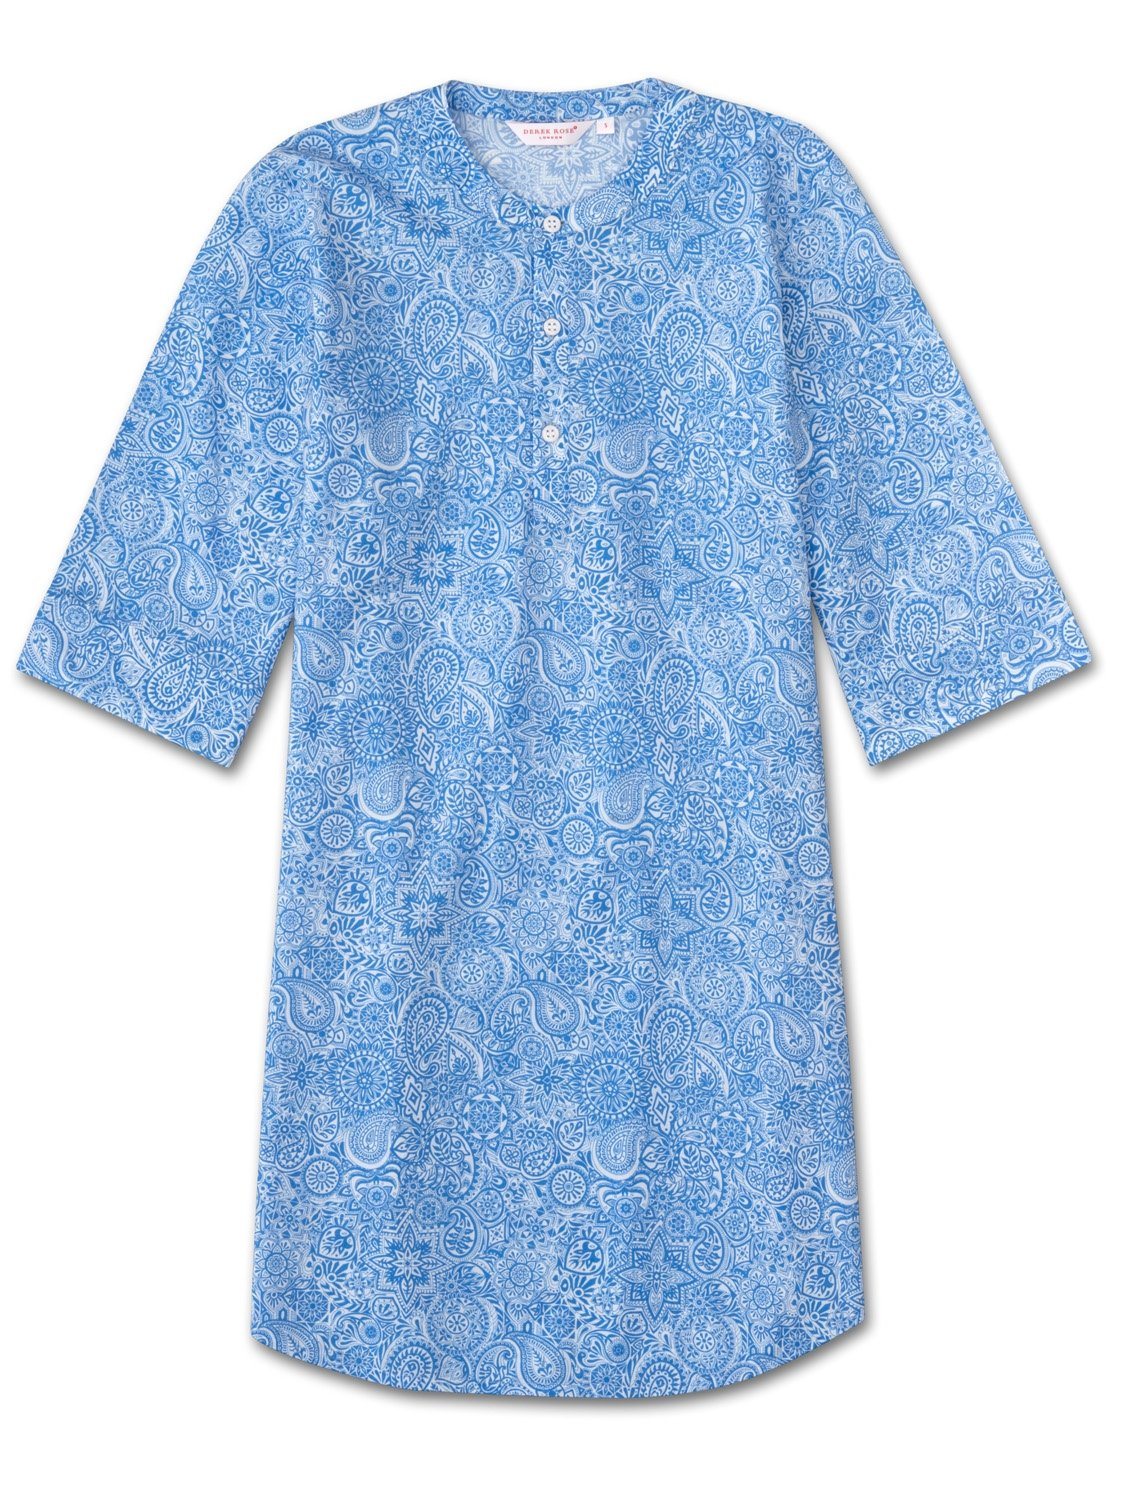 Women's Kaftan Nightshirt Ledbury 6 Cotton Batiste Blue